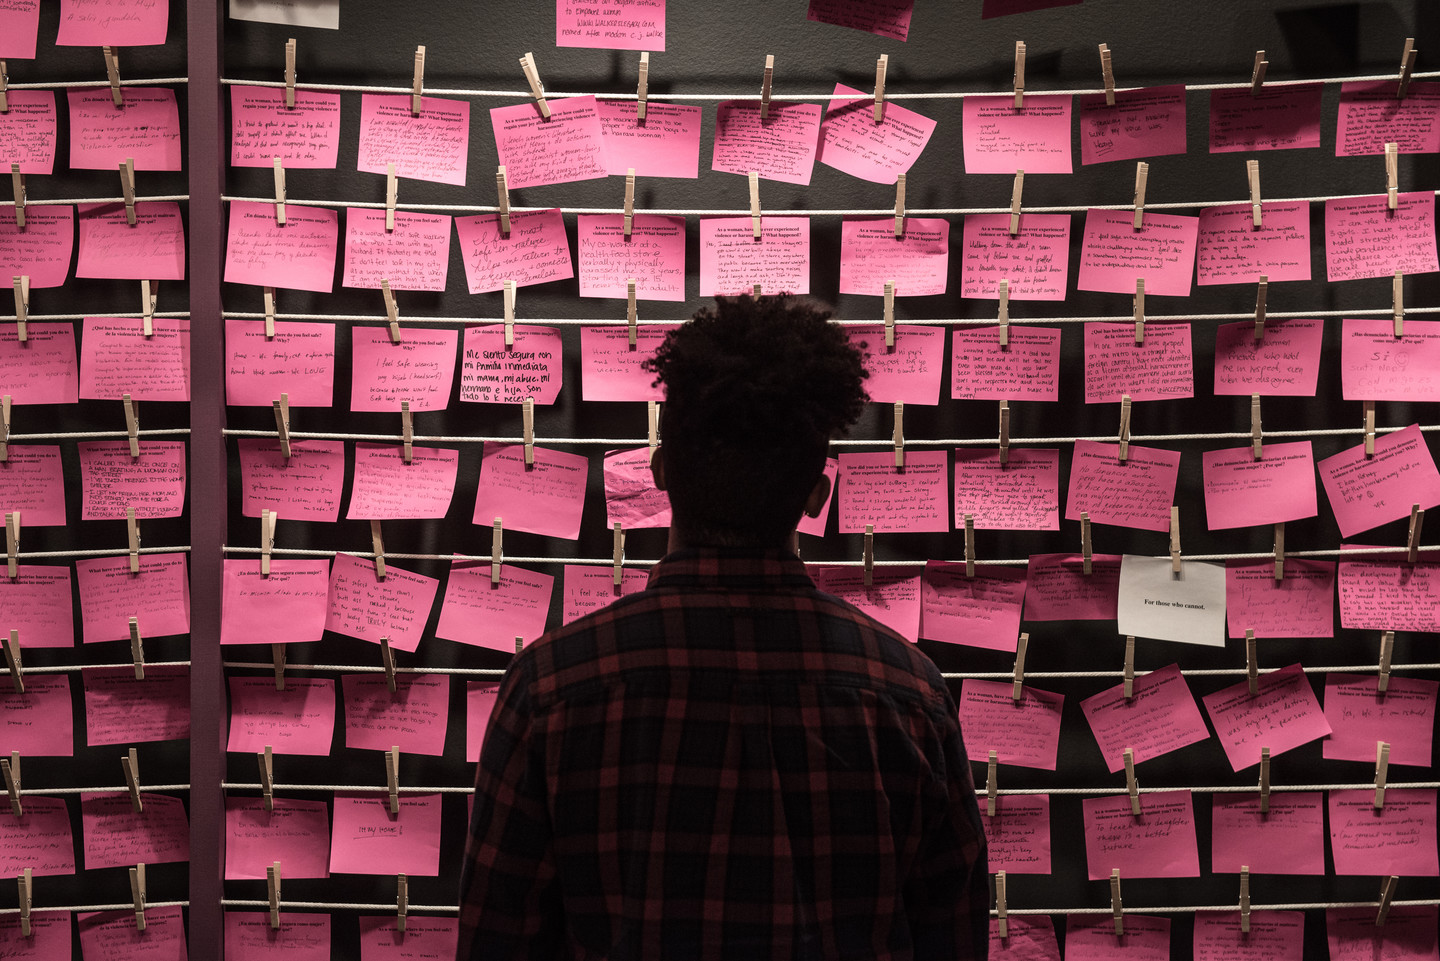 Man stands in front of rows of hot pink post-it notes.